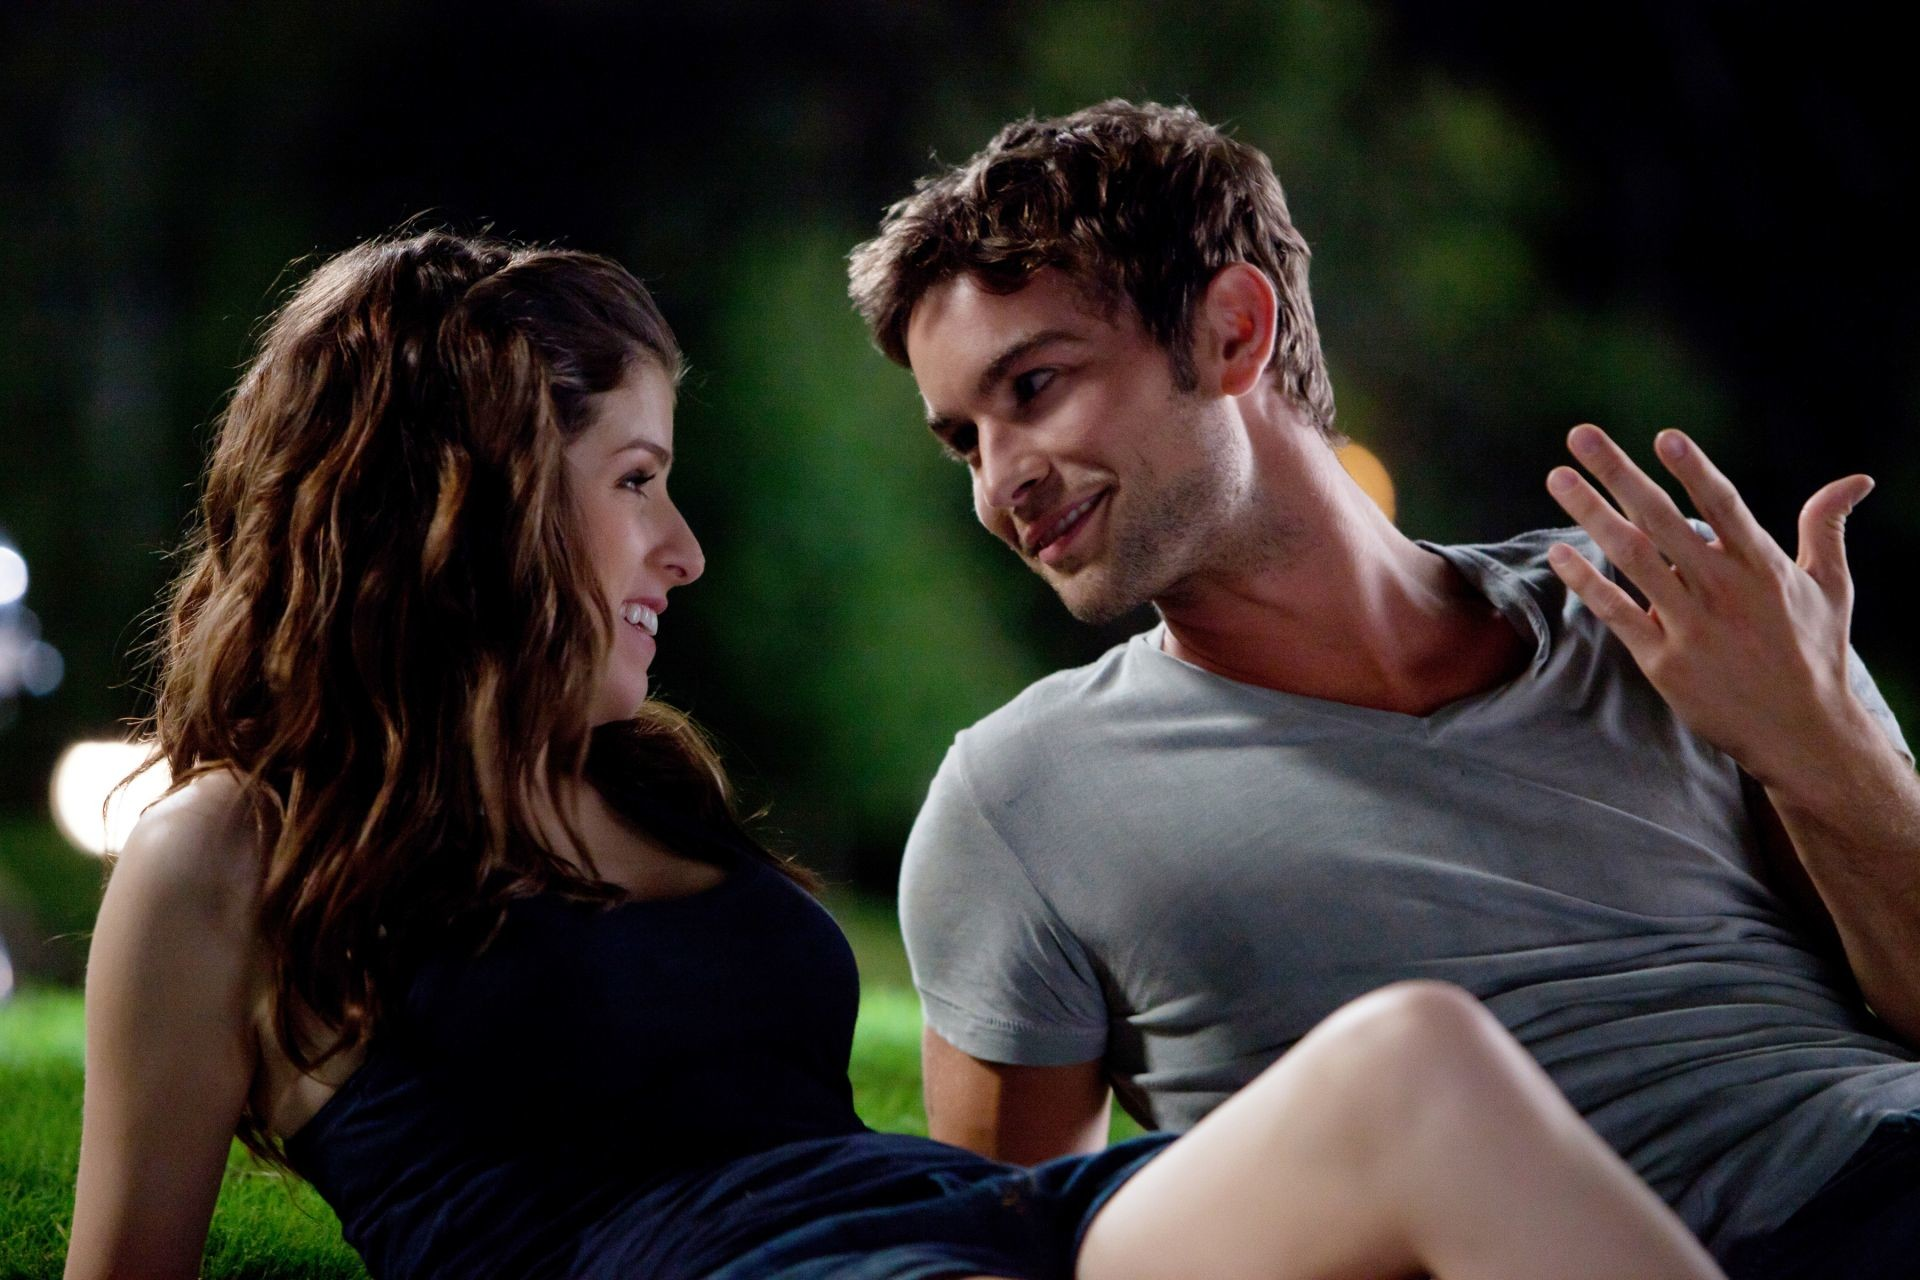 Res: 1920x1280, Rosie (Anna Kendrick) and Marco (Chace Crawford) in WHAT TO EXPECT WHEN